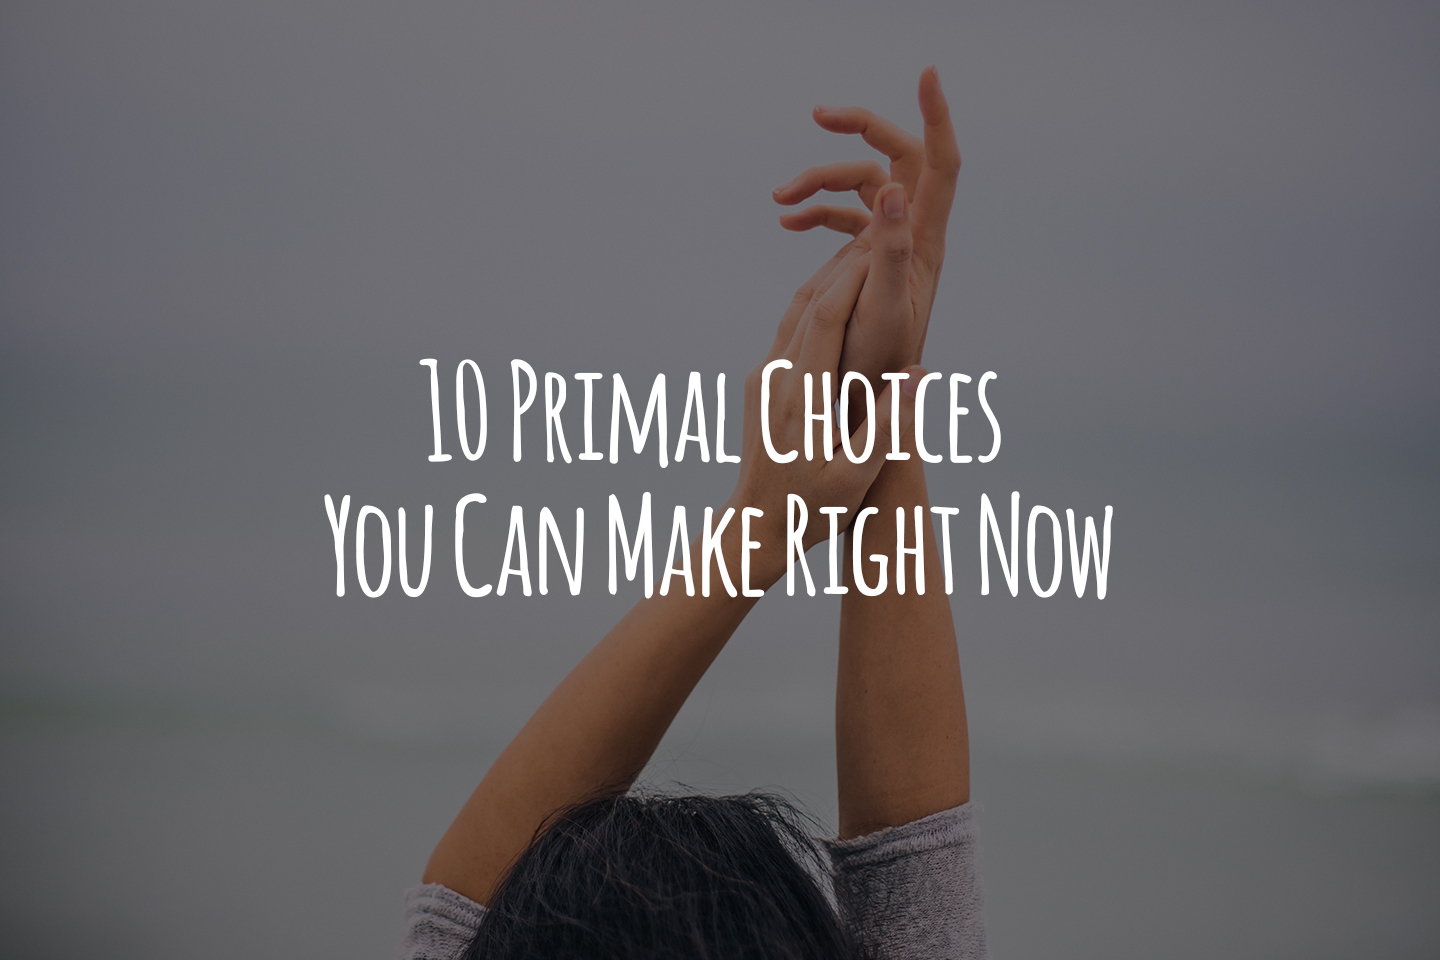 10 Primal Choices You Can Make Right Now header